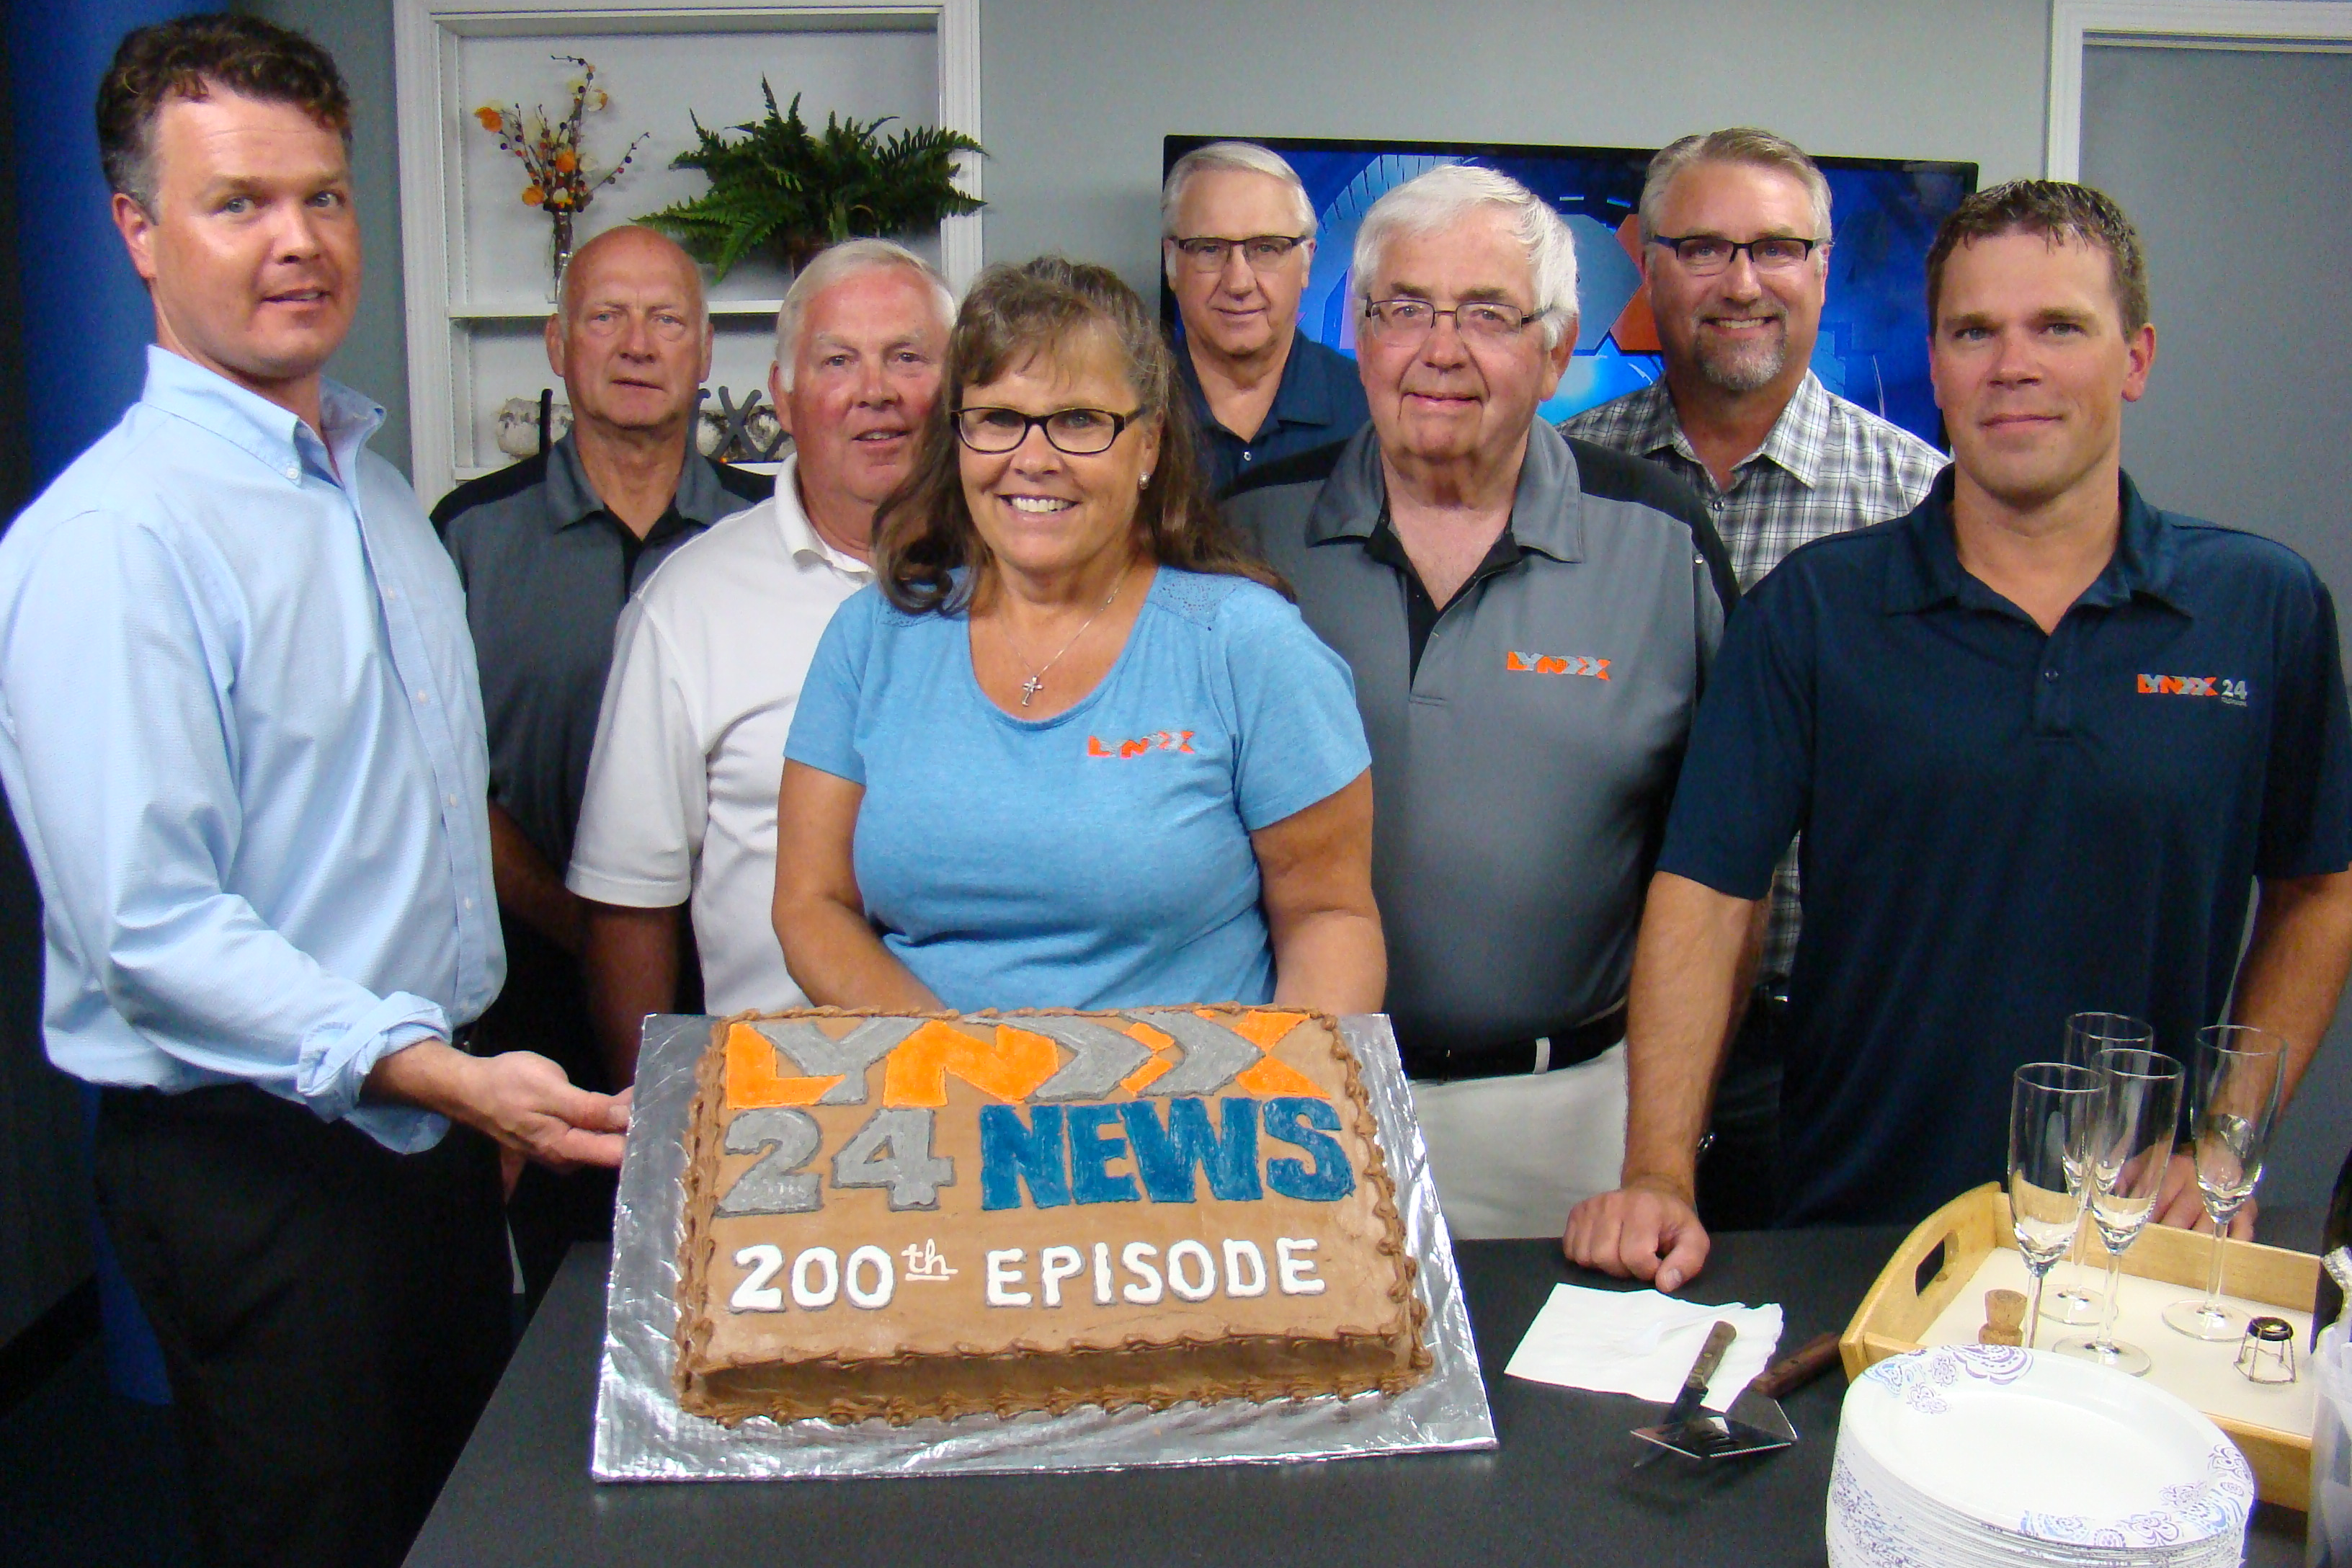 Lynxx 24 TV Celebrates 200 Episodees